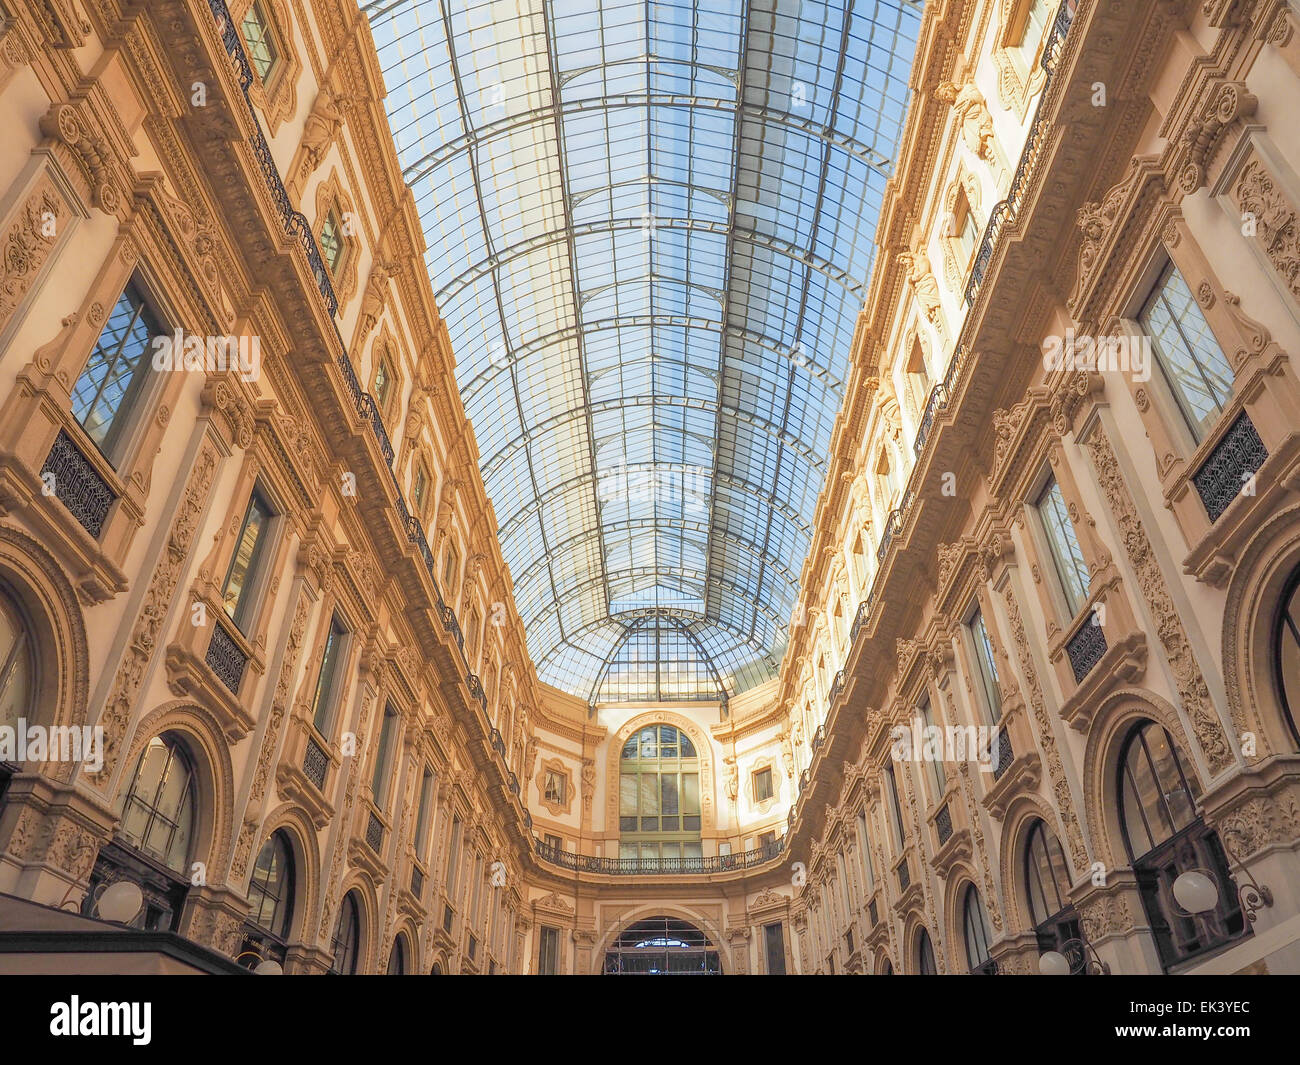 MILAN, ITALY - MARCH 28, 2015: The Galleria Vittorio Emanuele II has been recently restored for the Expo Milano - Stock Image